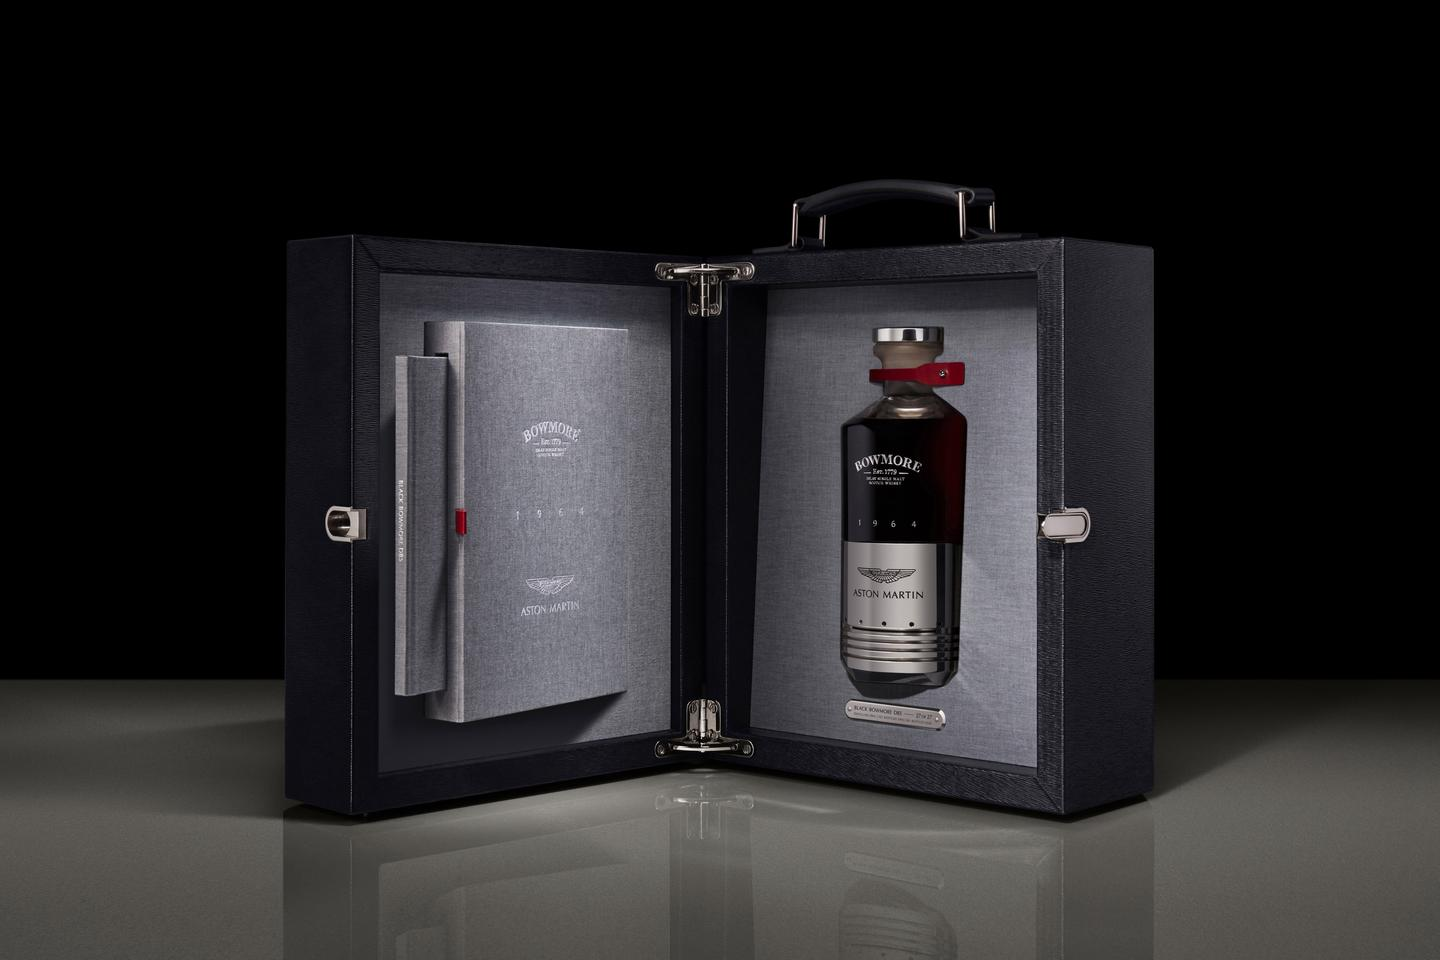 Black Bowmore DB5 1964 is presented in a handmade calfskin presentation box; itself a work of art, with bespoke nickel-plated brass latch and hinges.